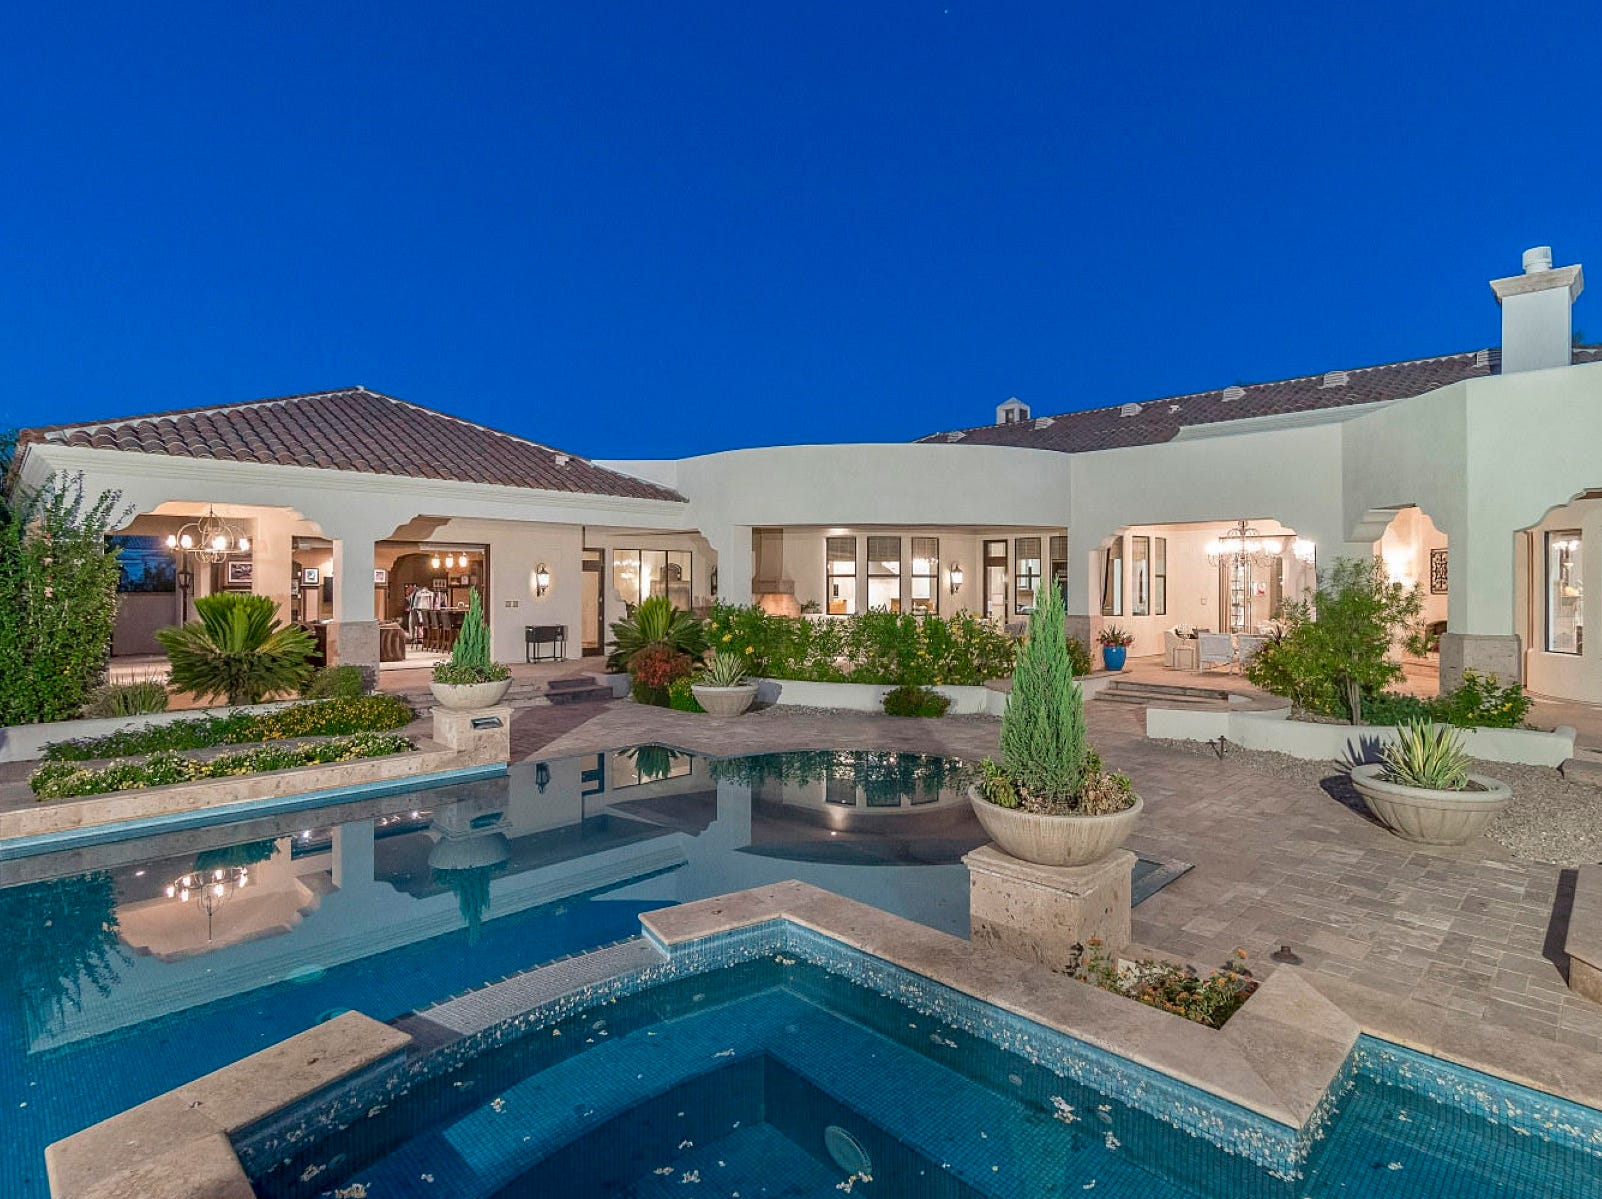 Stephen M. Horvath purchased a mansion in Scottsdale's Cactus Acres community. The 8,036-square-foot house has six bedrooms, eight bathrooms and sits on an 1.1-acre lot.